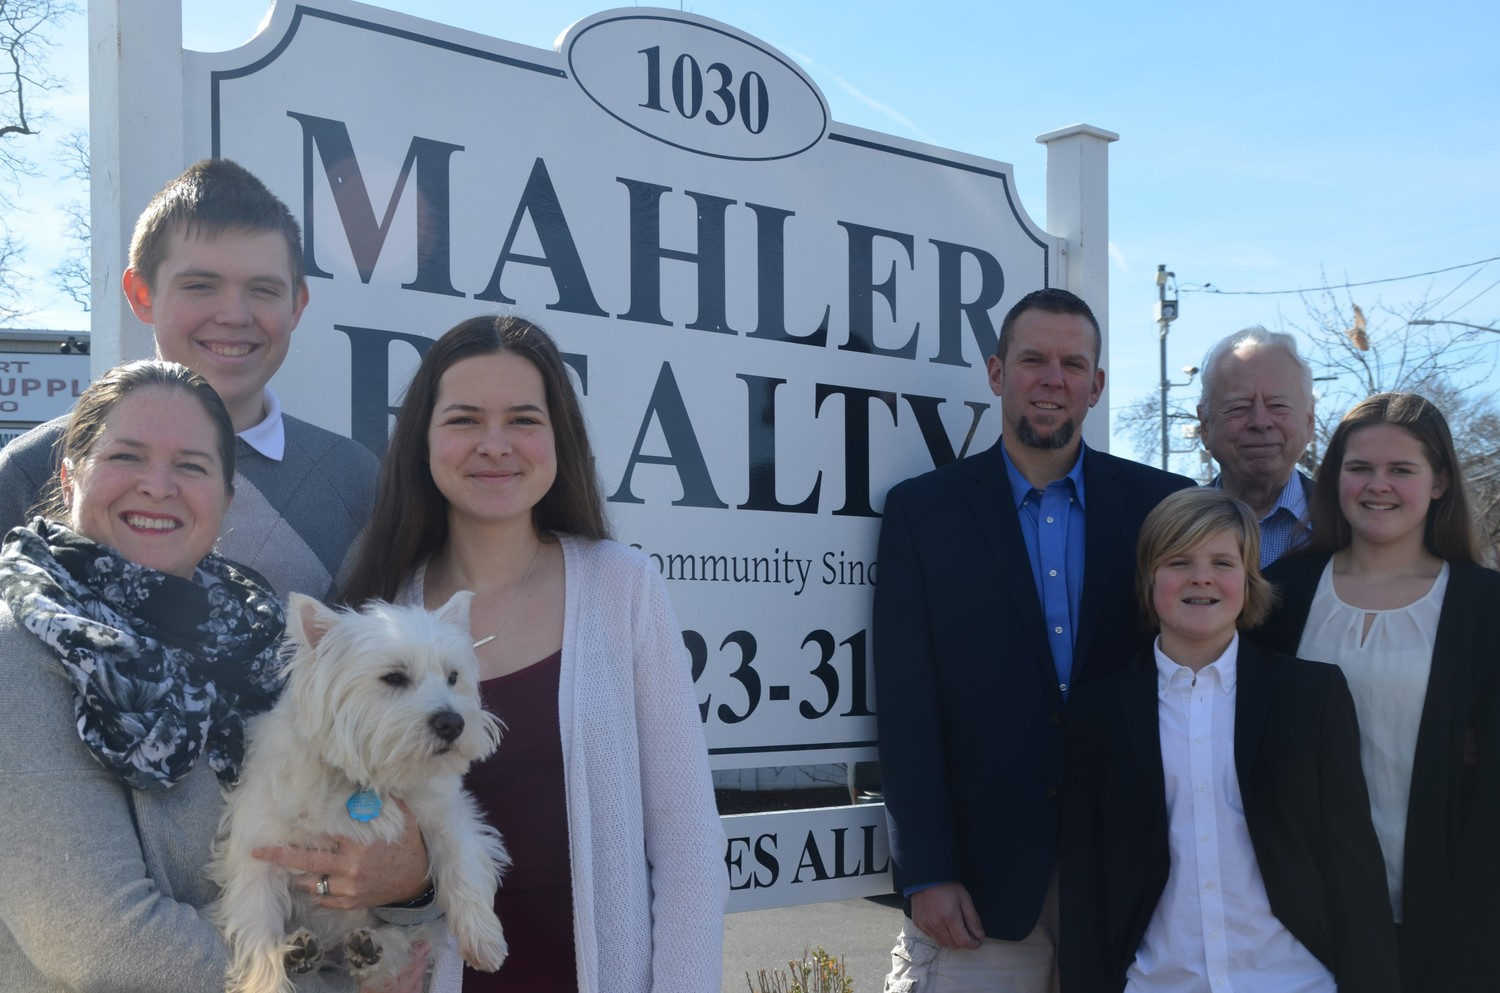 The Mahler family posed for a photo in from of the Mahler Realty sign. From left, Tracy holding Ben the dog, her kids Peyton, Karaline, Brady, and Kirsten, her husband Erik, and Rolf.